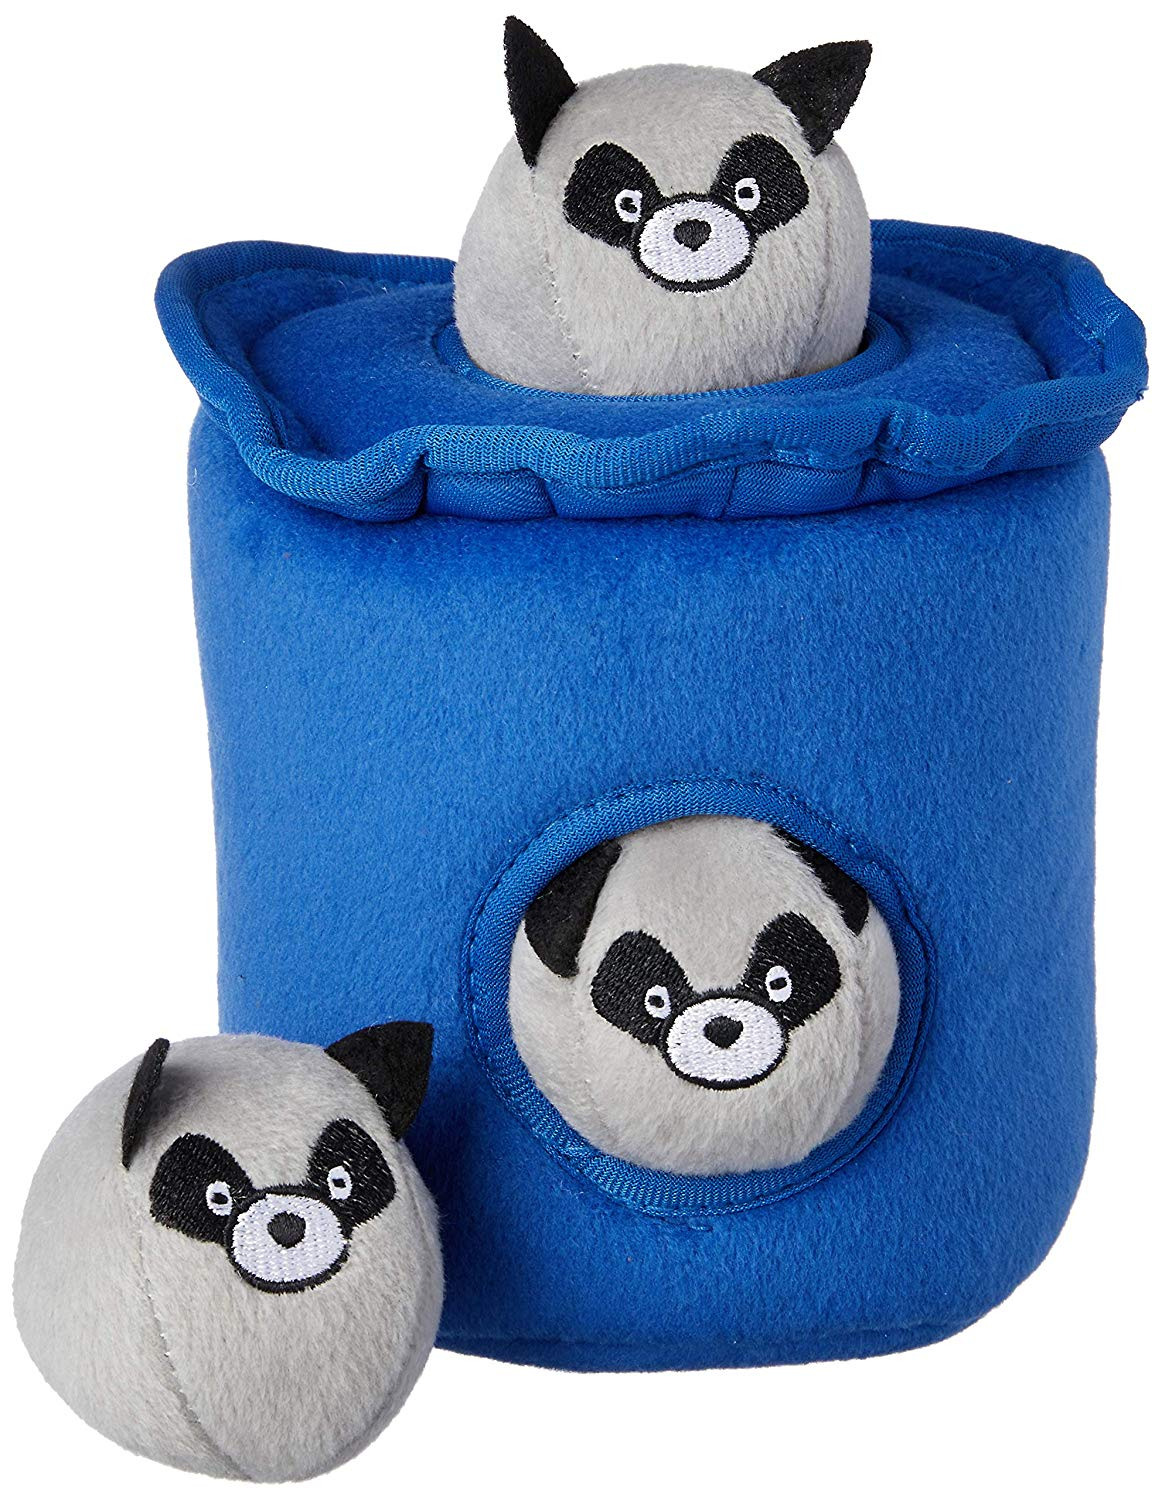 ZippyPaws Burrow Squeaky Hide and Seek Plush Dog Toy, Raccoons in Trash Can